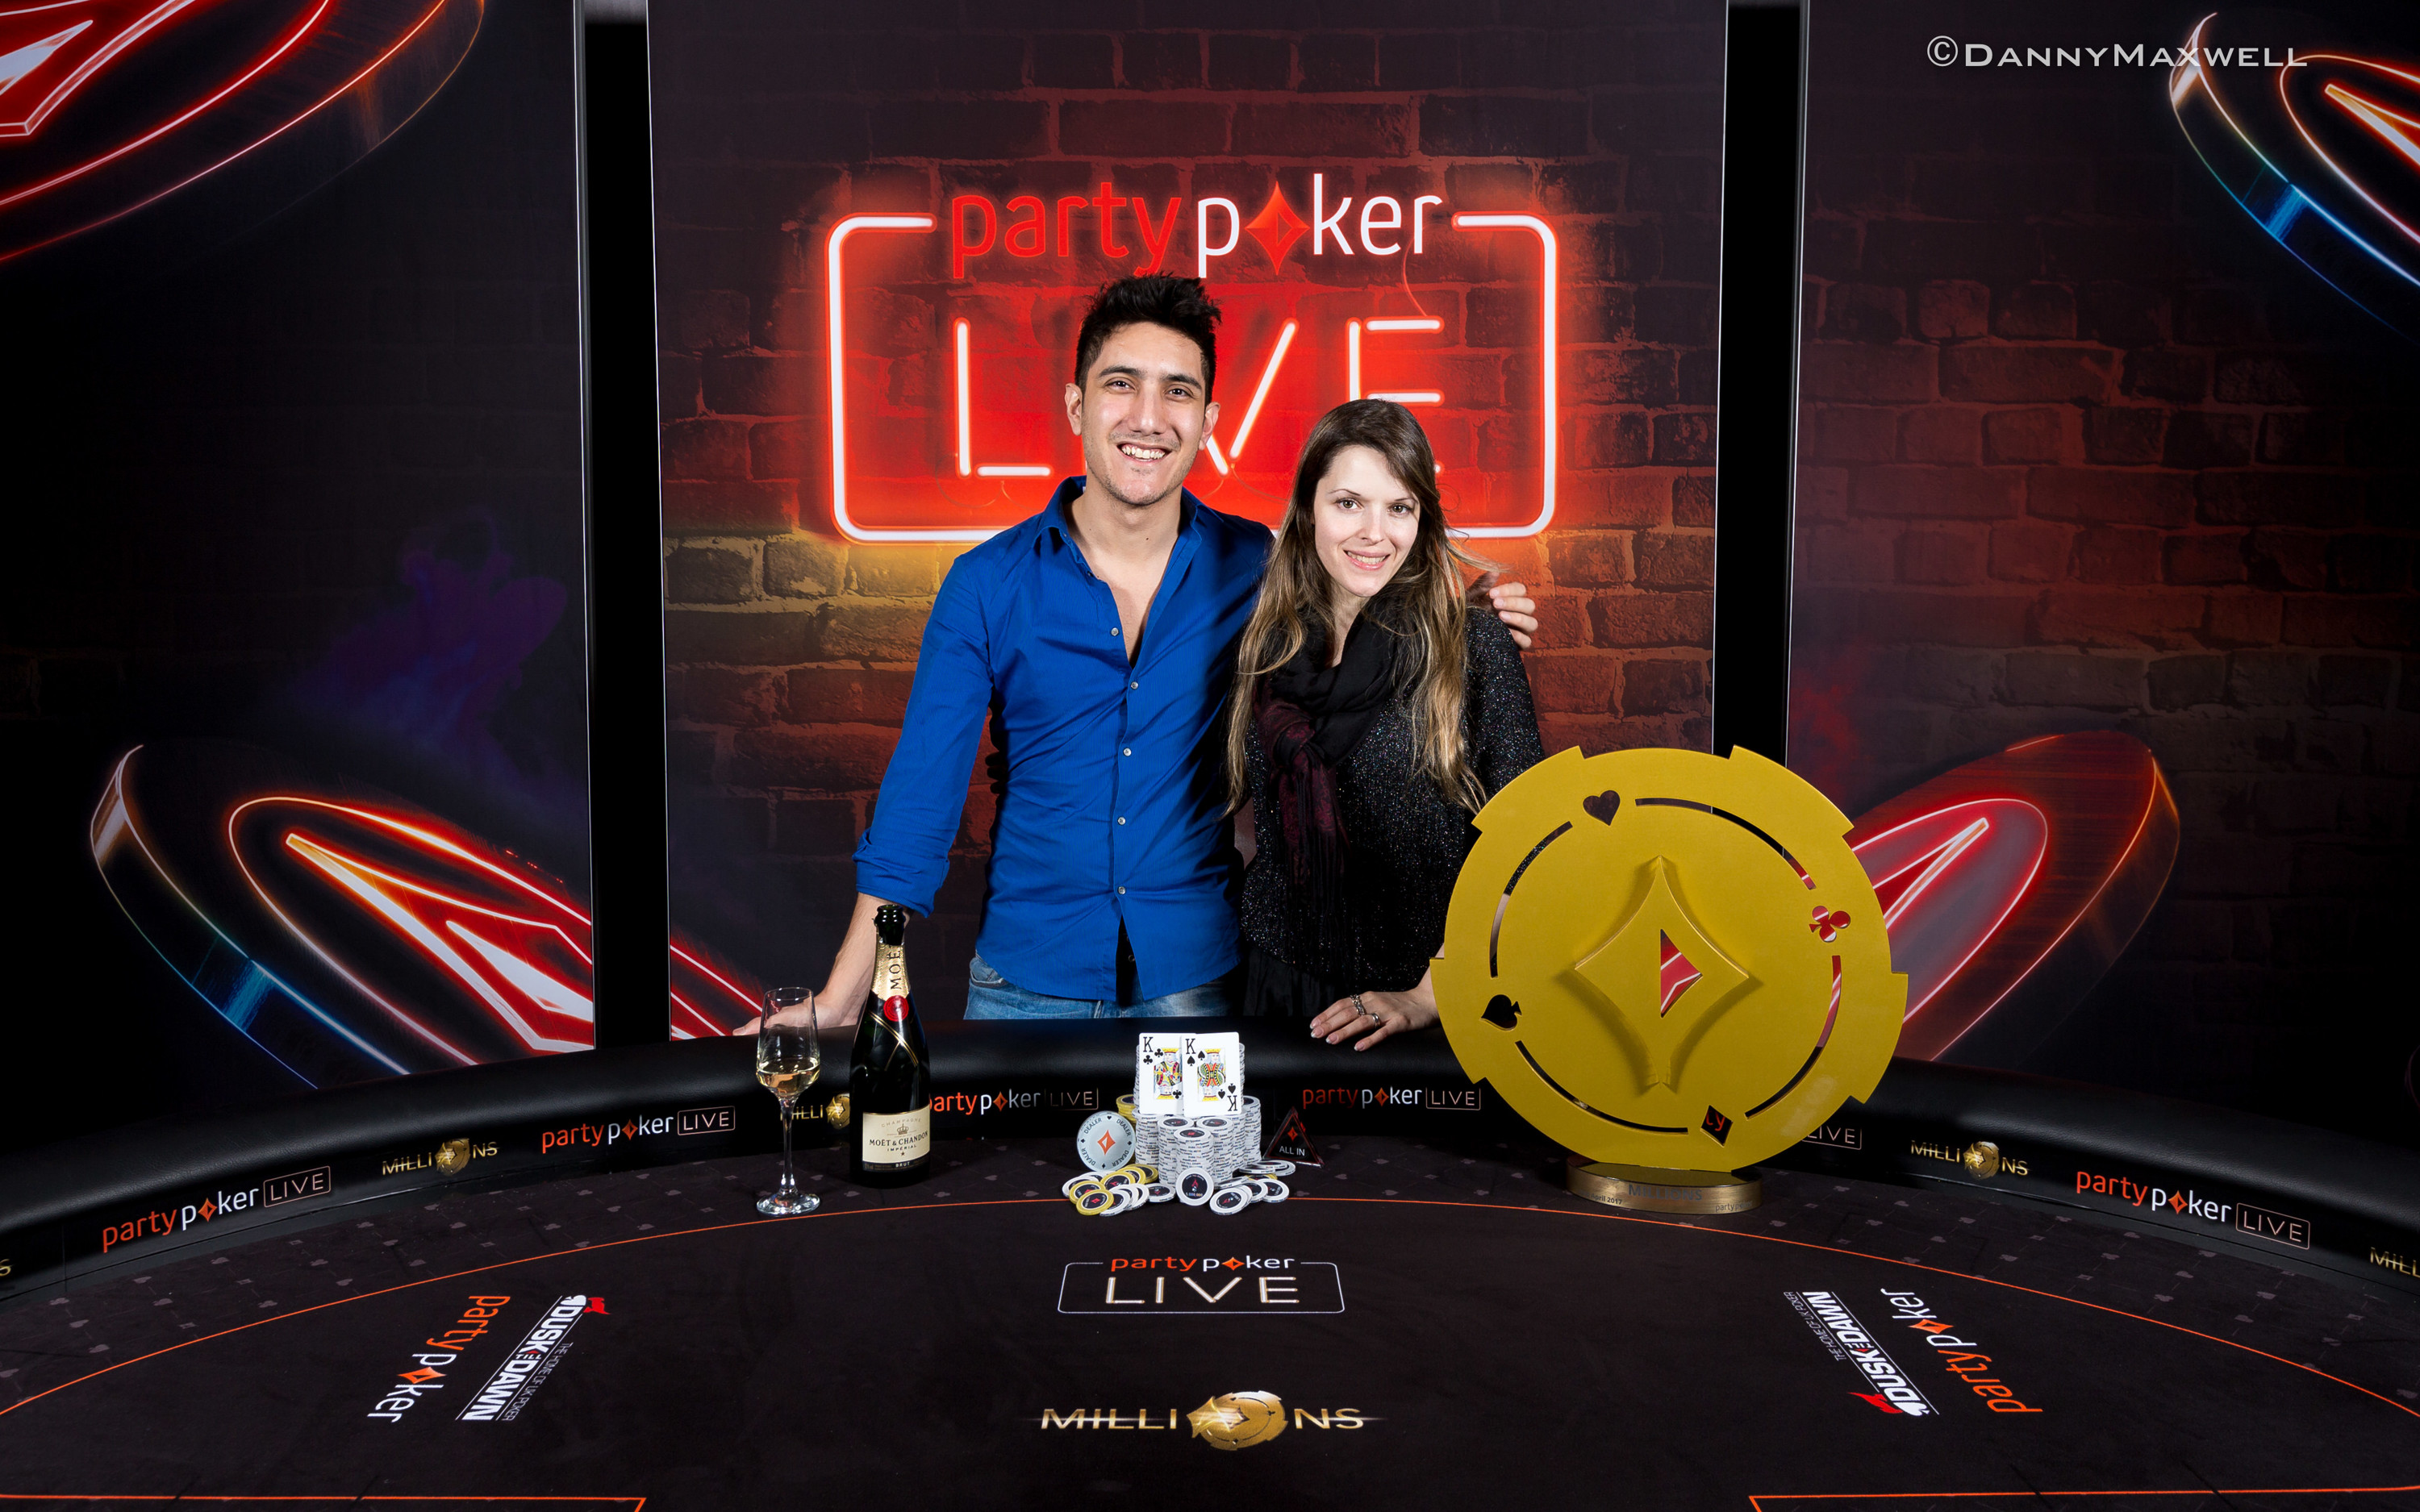 Maria Lampropulos - 2017 partypokerLIVE Millions Dusk Till DawnMain Event Winne